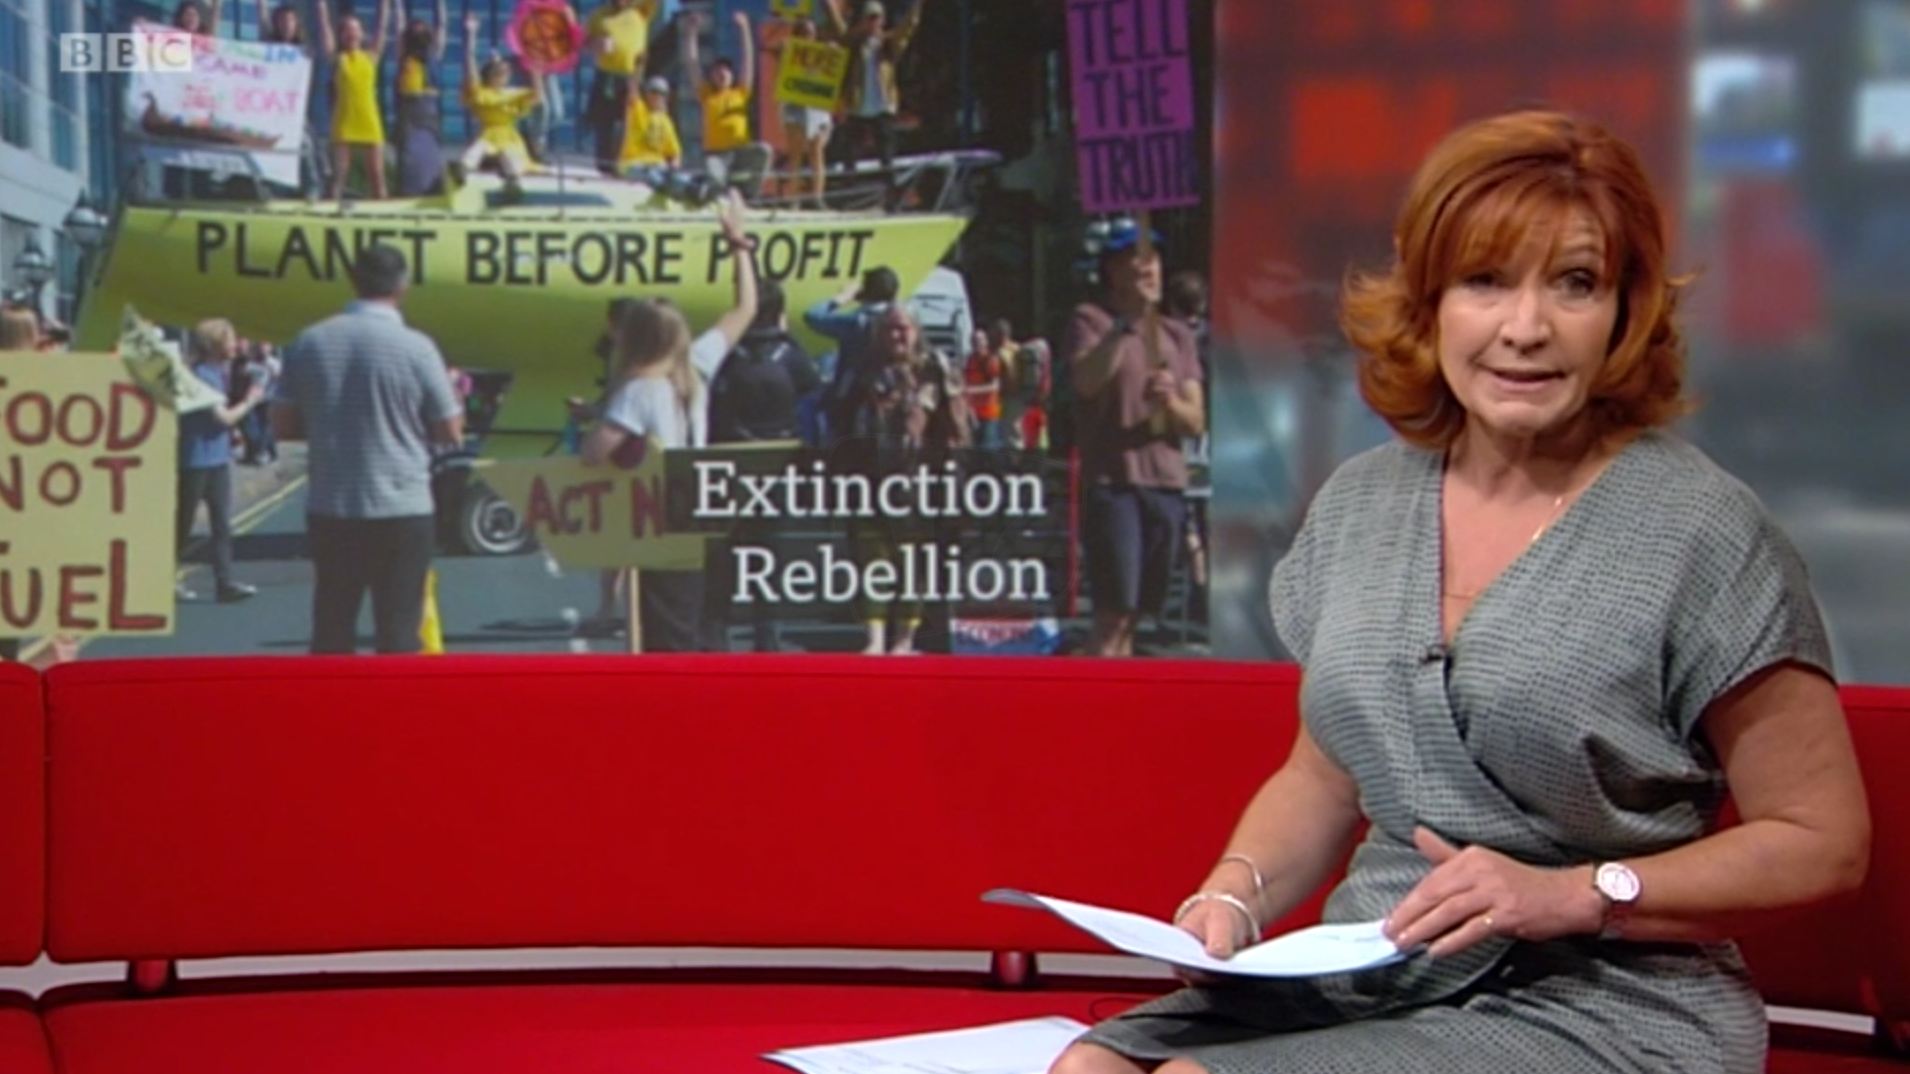 PICTURED: BBC Look North studio presentation and visual journalism. Presenter: Clare Frisby.